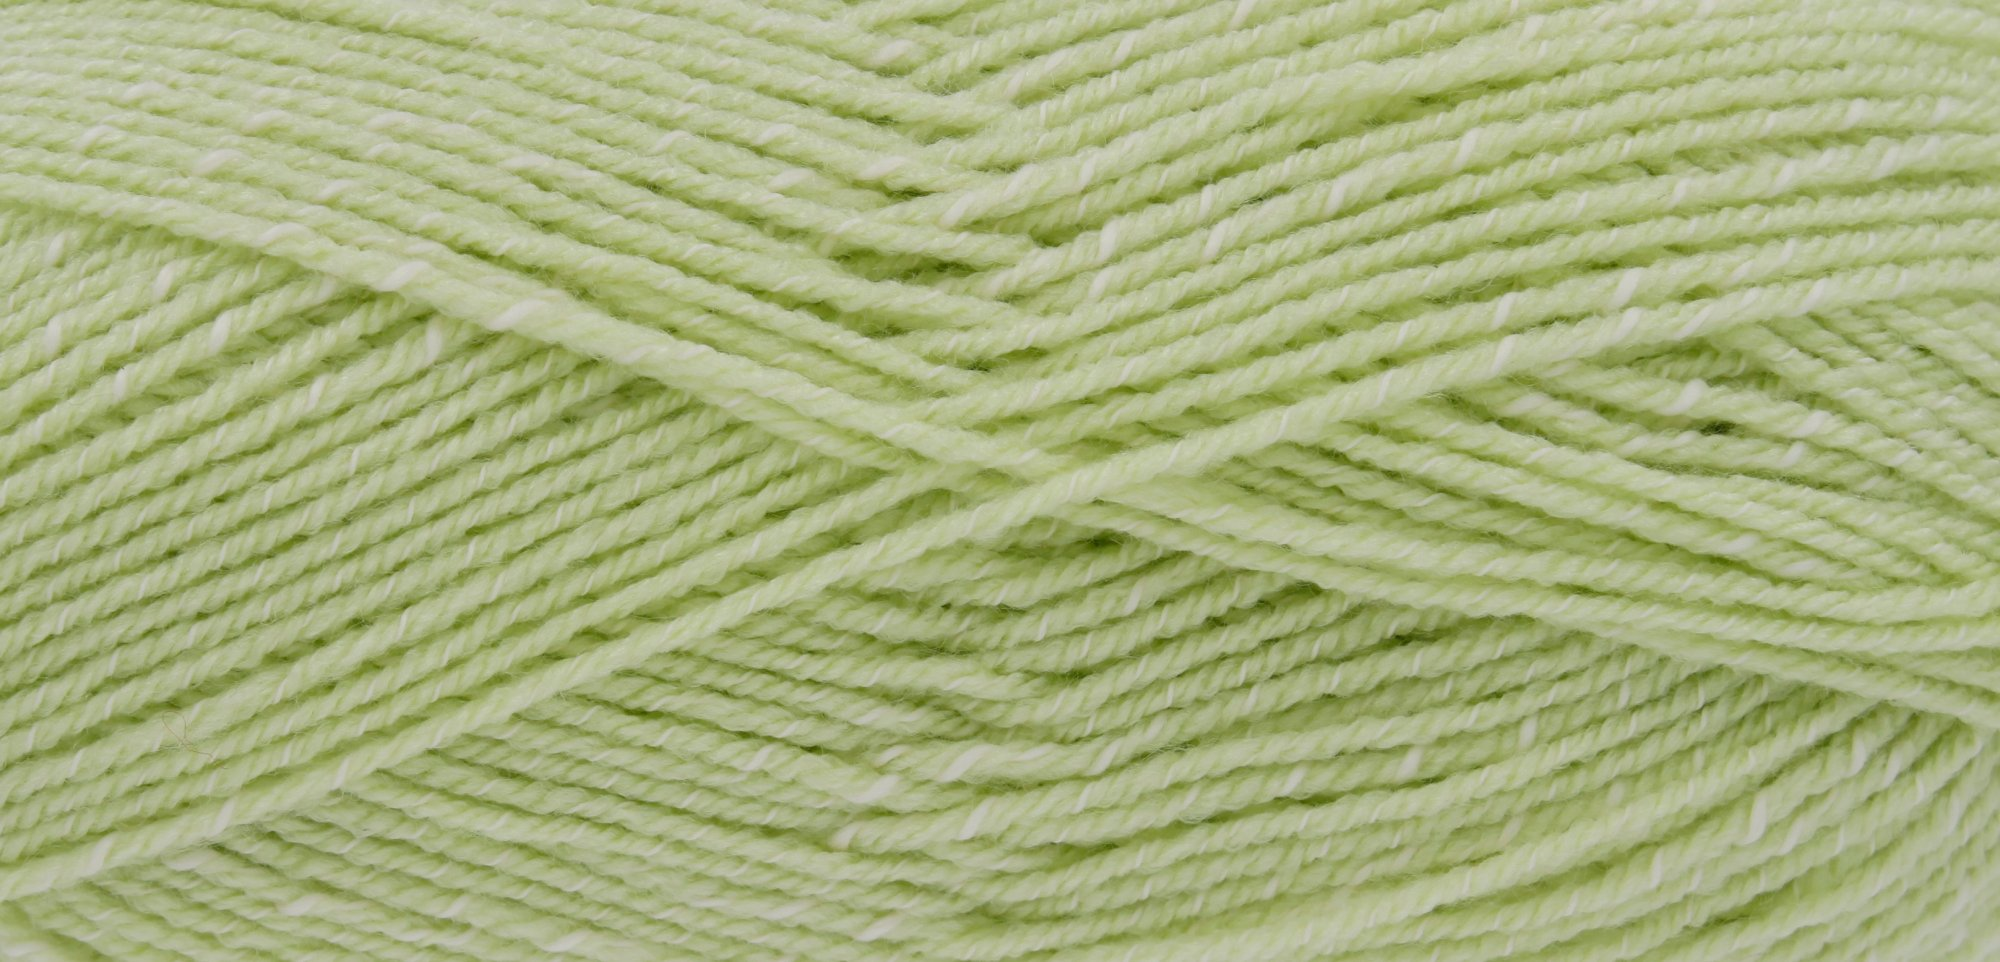 Cotton Top DK 4222 by King Cole Yarn